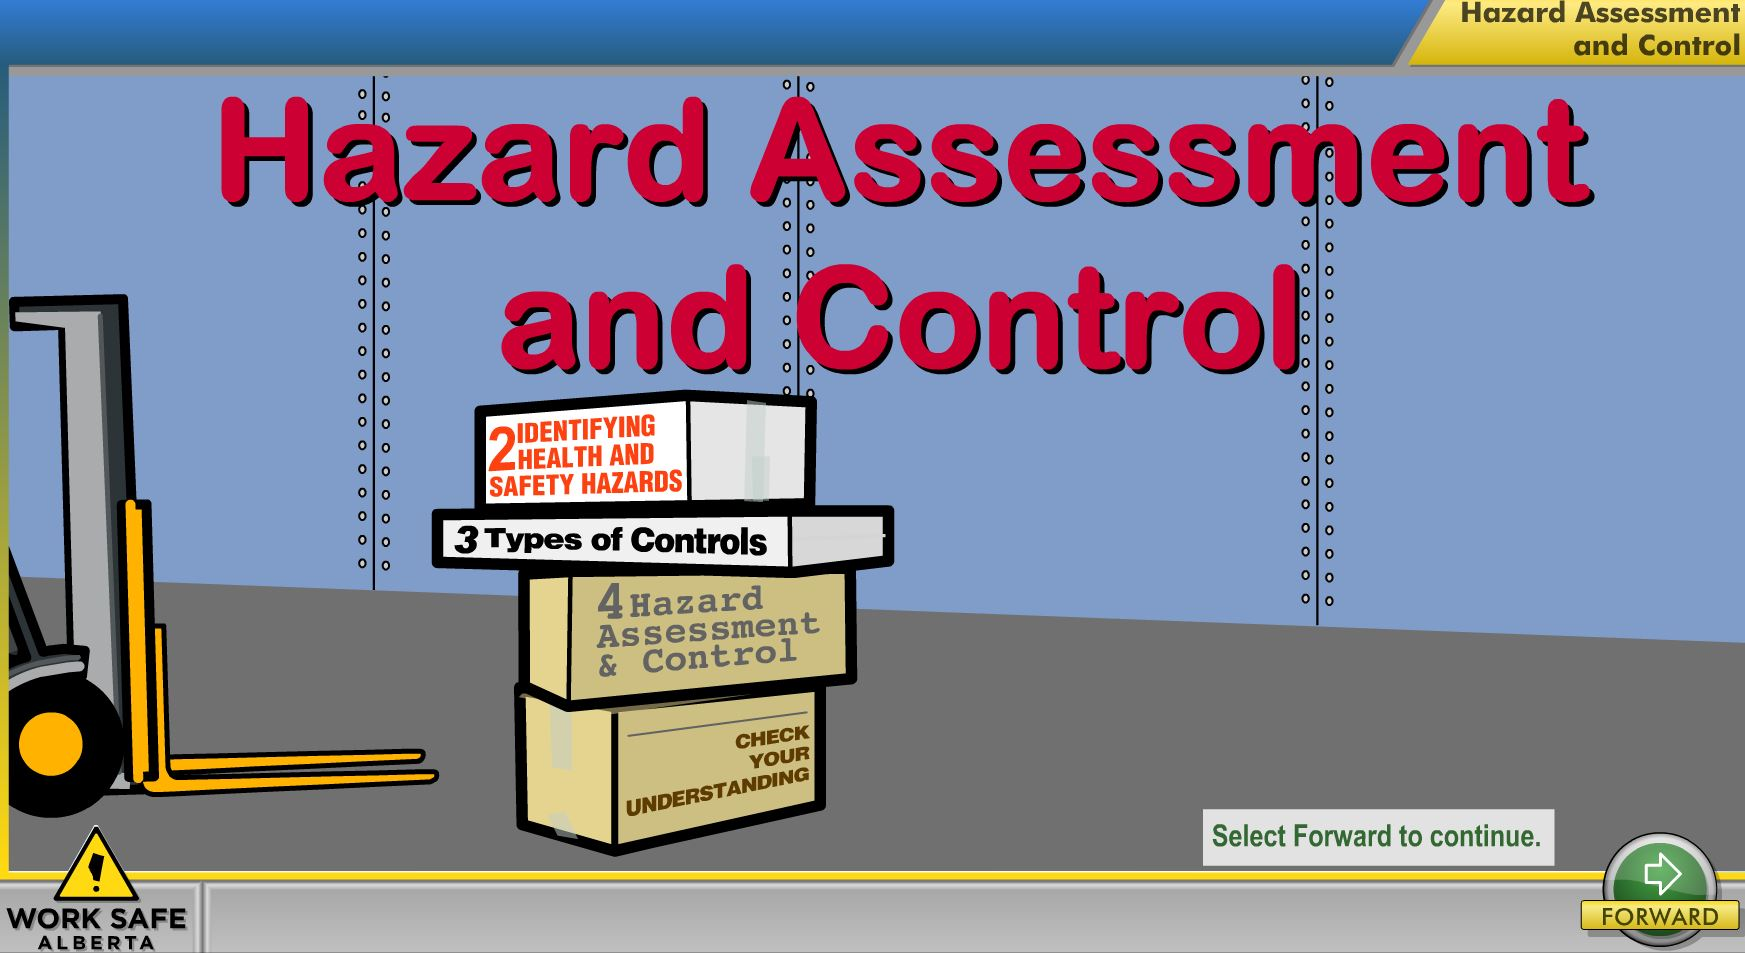 Hazard assessment and control module